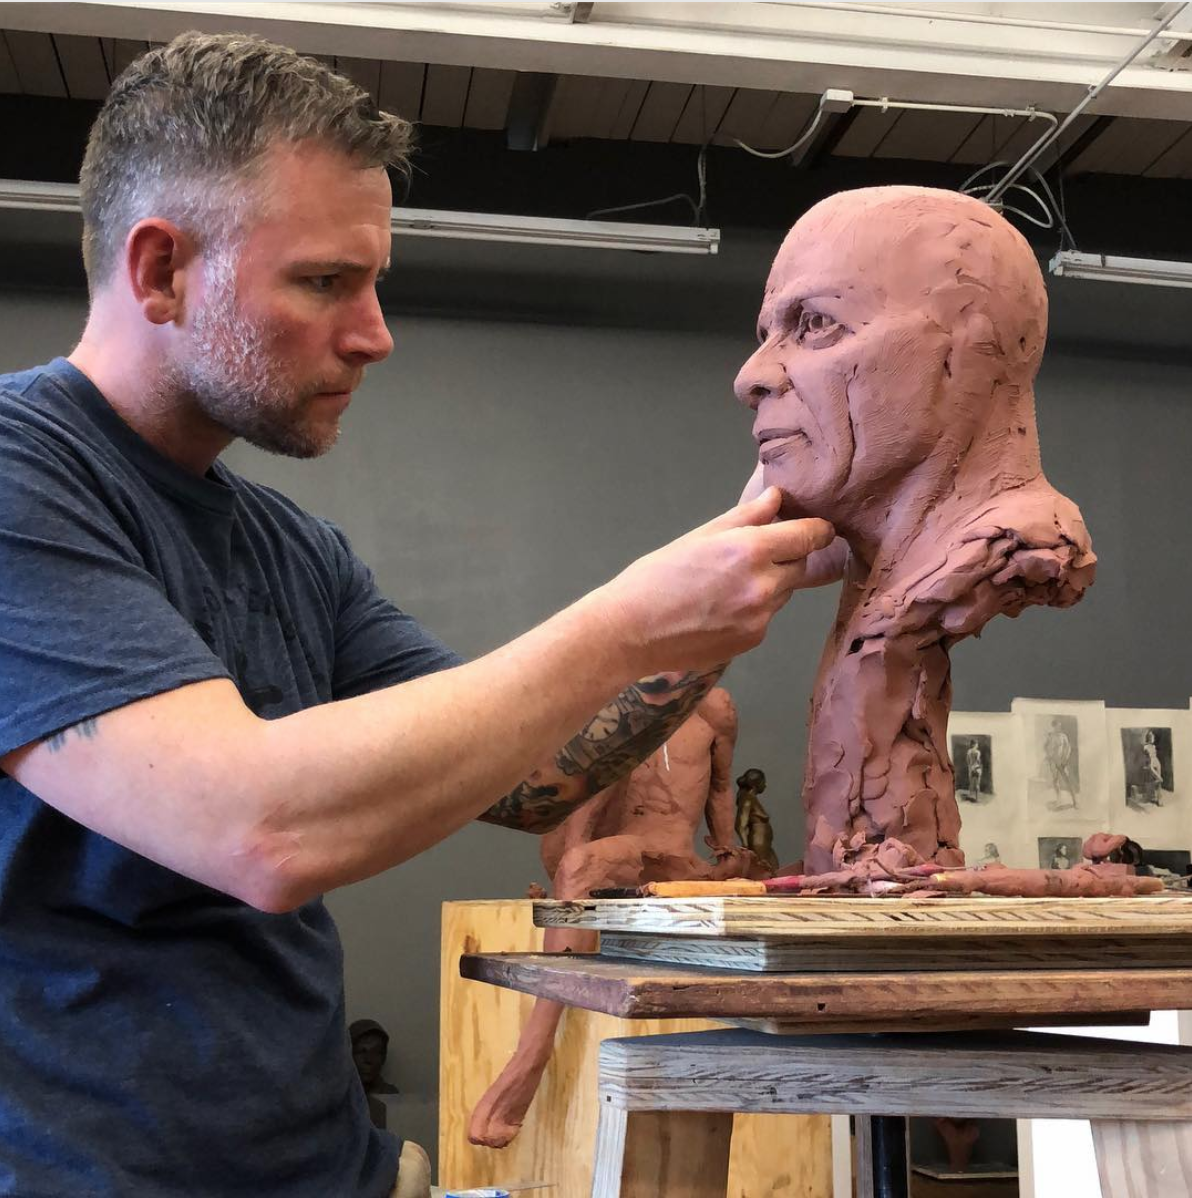 Working on getting all of the underlying structures right on this sculpt of Staff SGT. Ronald Le'ger before I add the beard.